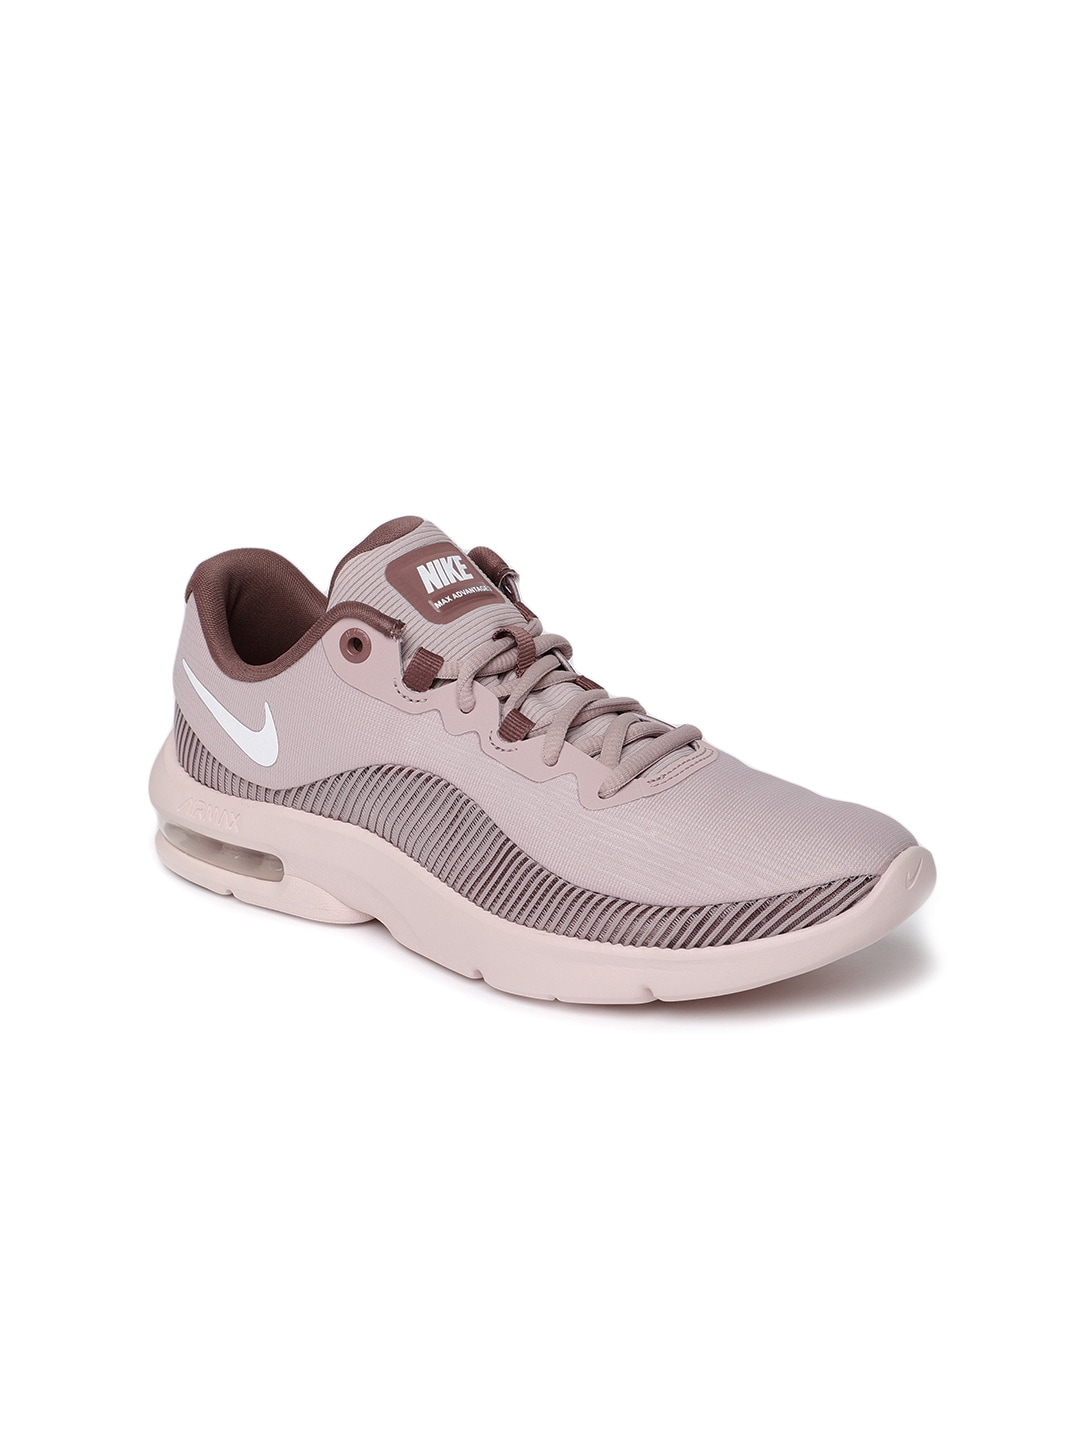 buy online 20954 053aa Nike Air Max Shoes - Buy Nike Air Max Shoes Online for Men   Women